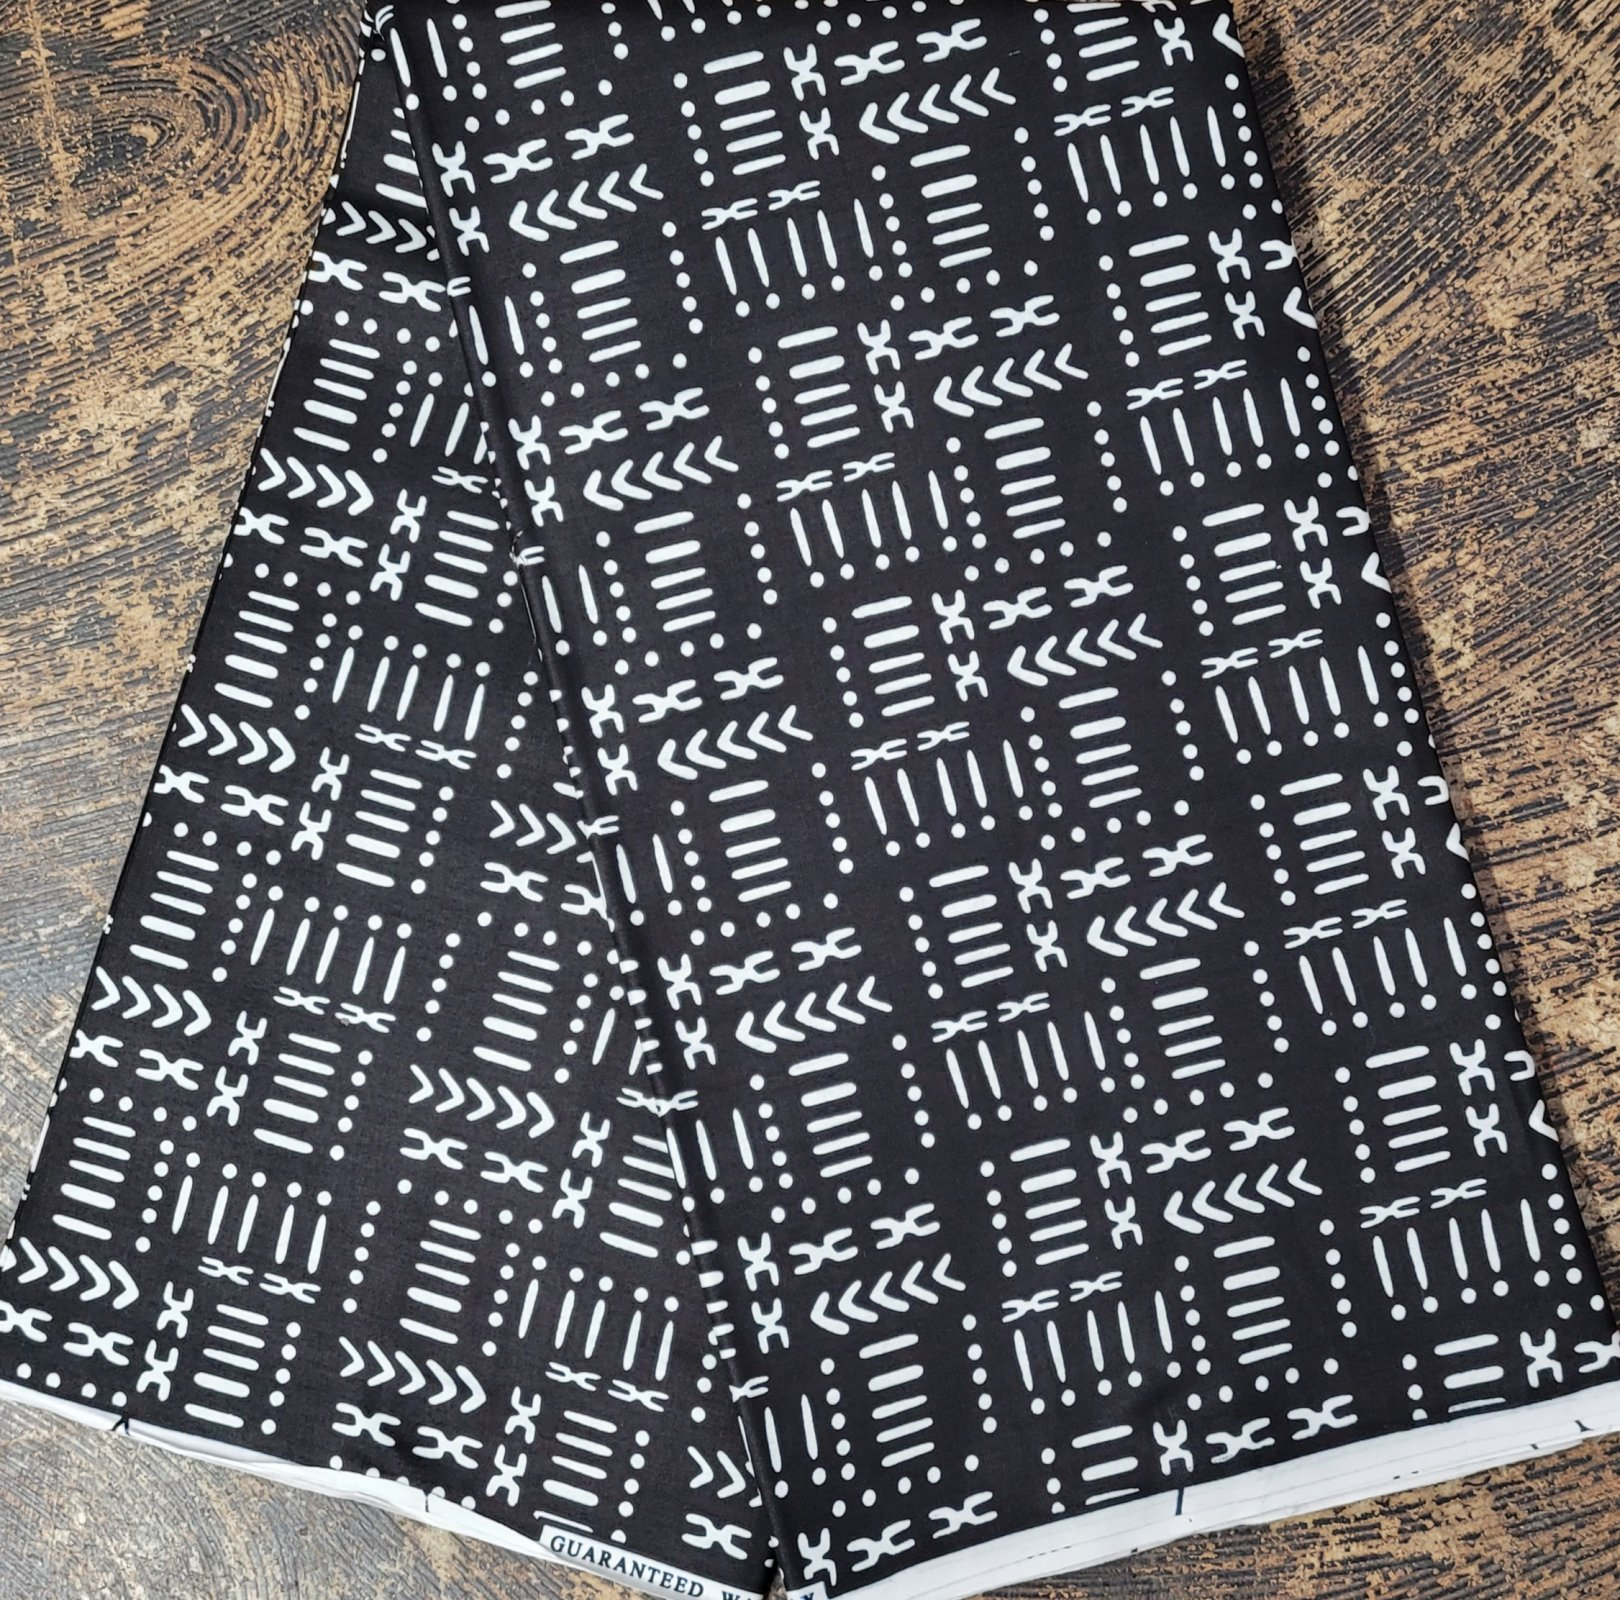 African Black and White Mudcloth Print Fabric #478